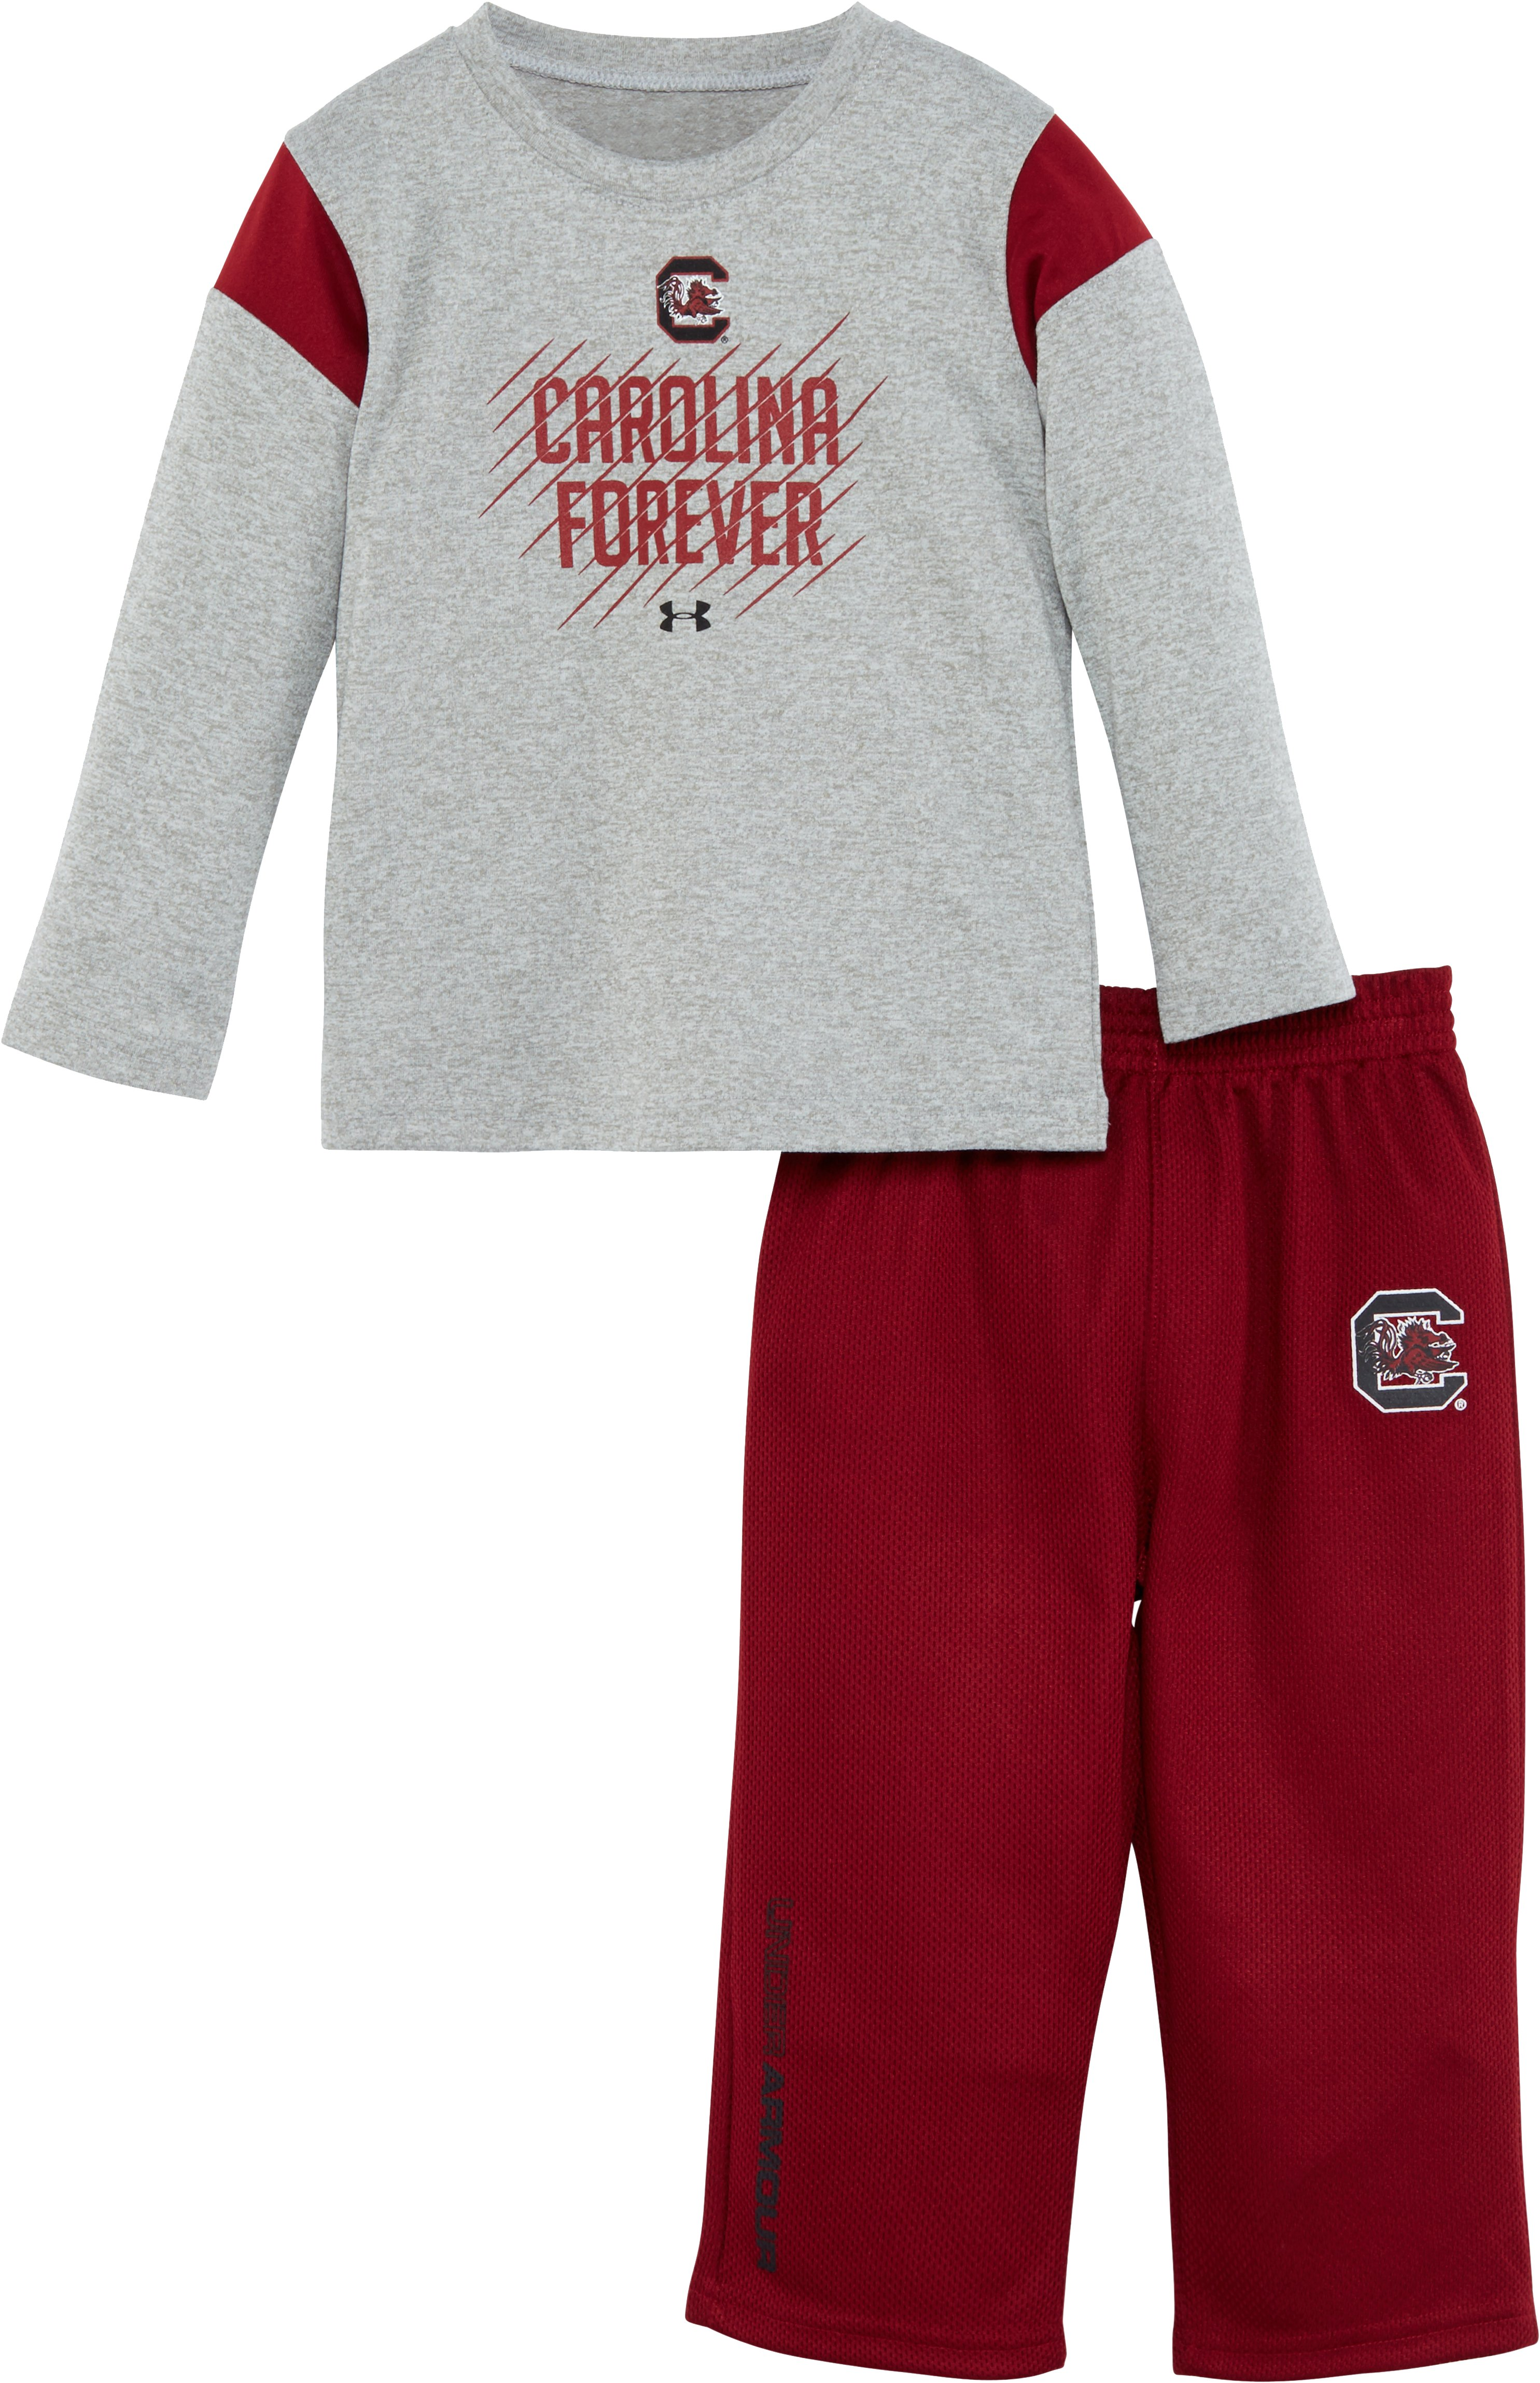 Boys' Infant South Carolina Forever Pant Set, True Gray Heather, Laydown